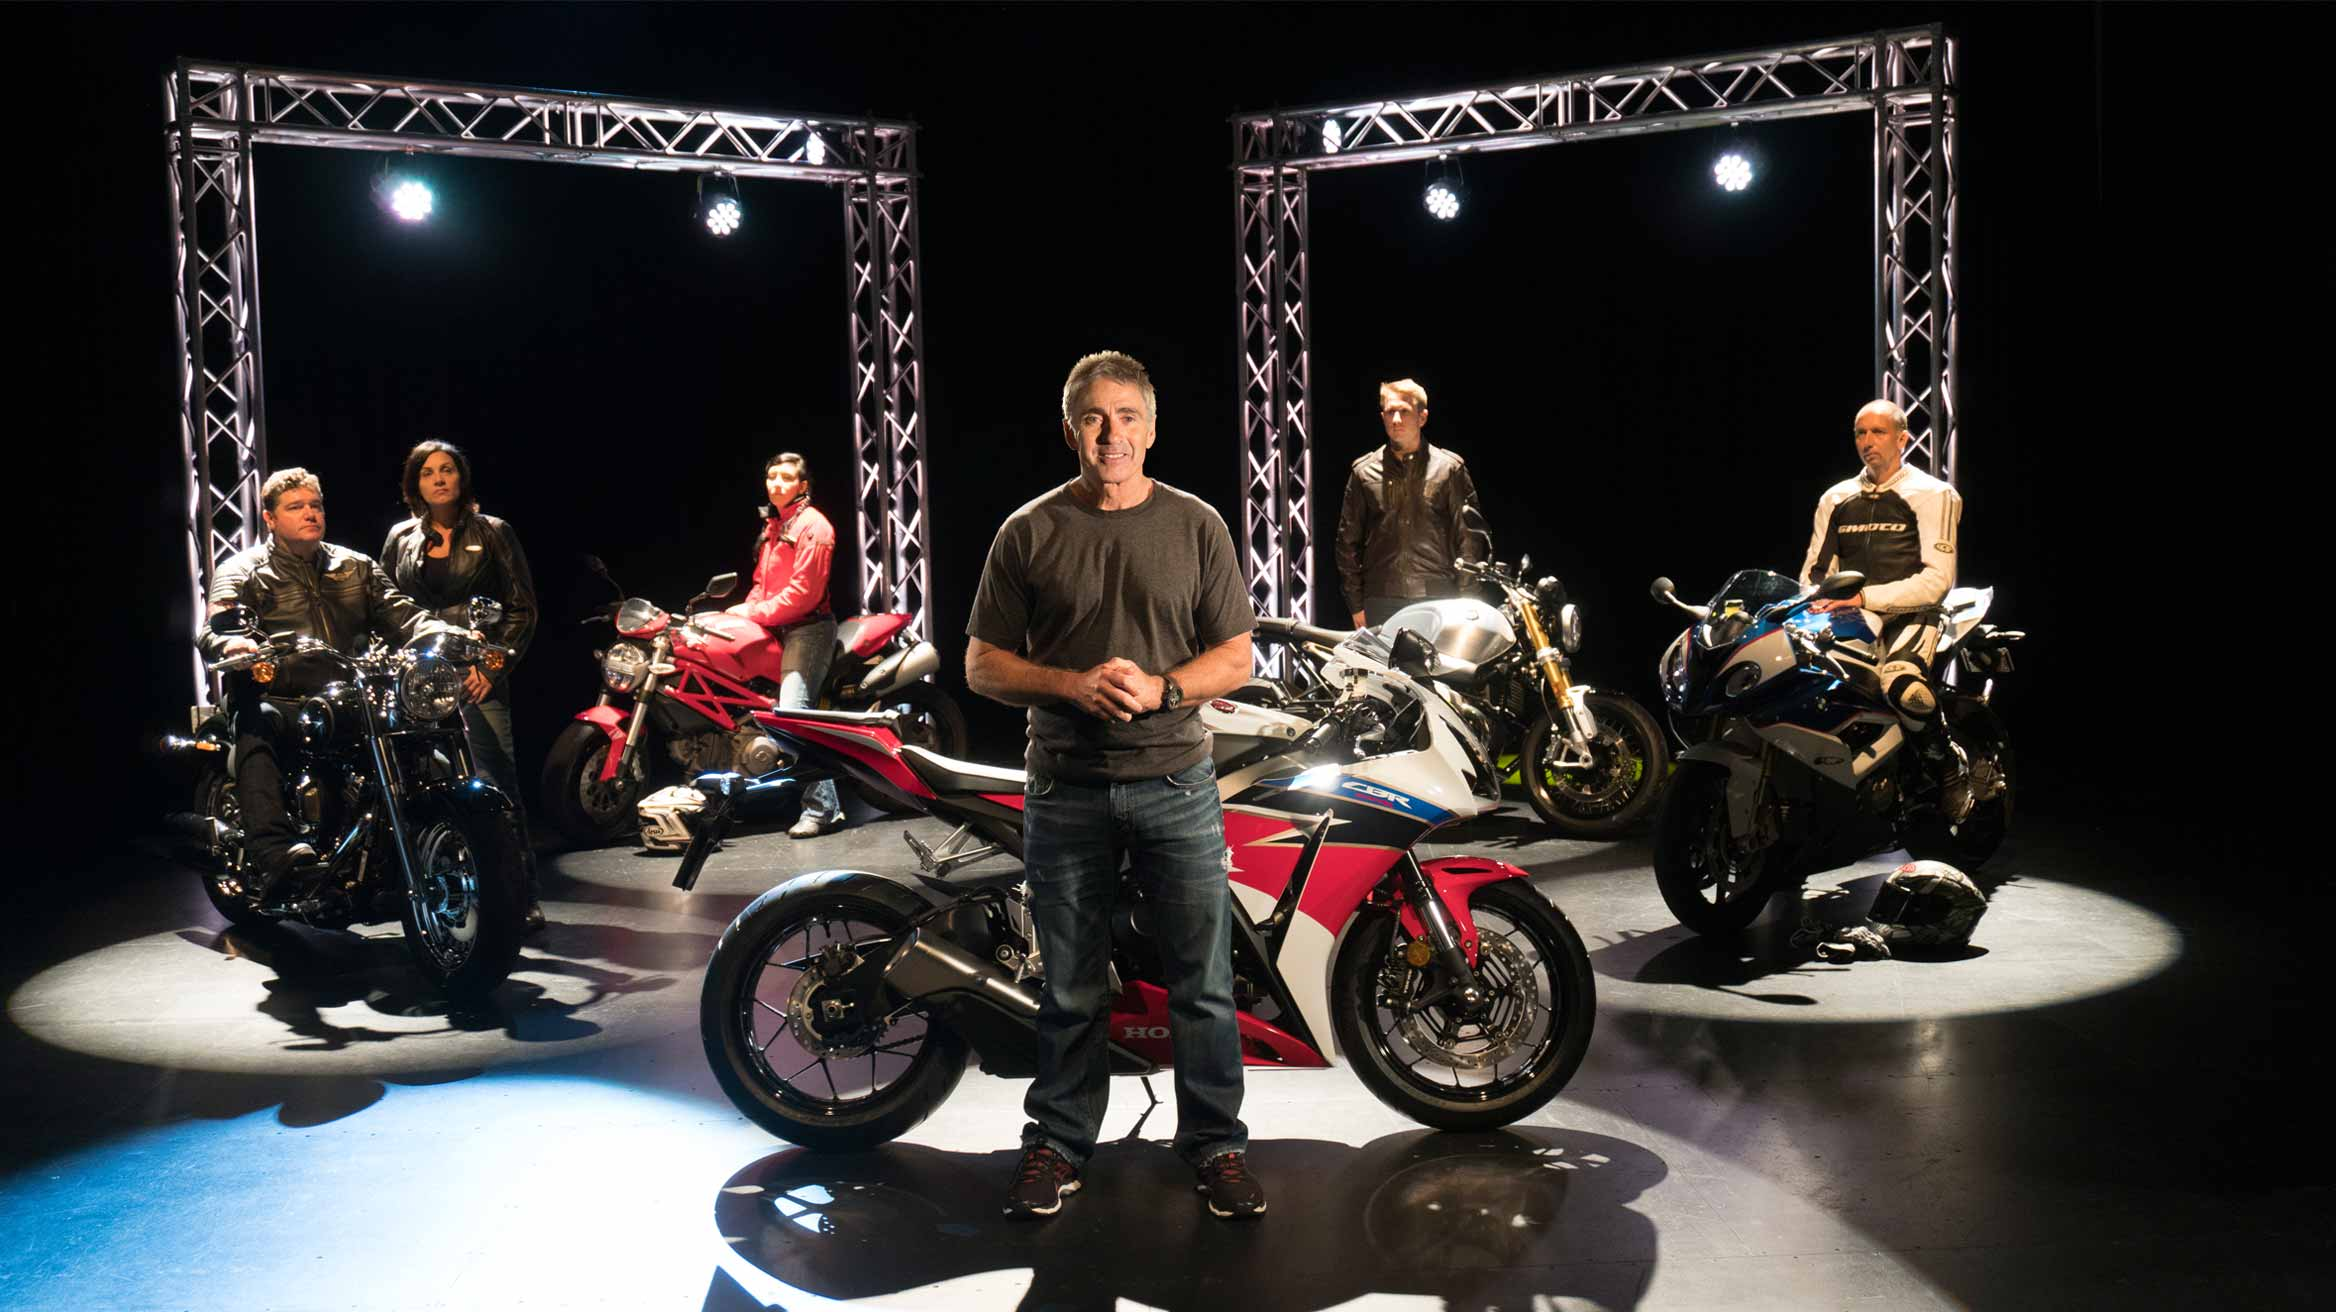 Mick Doohan standing infront of a motorcycle in a studio filled with lights and other various types of bikers featured behind him with their corresponding motorcycles